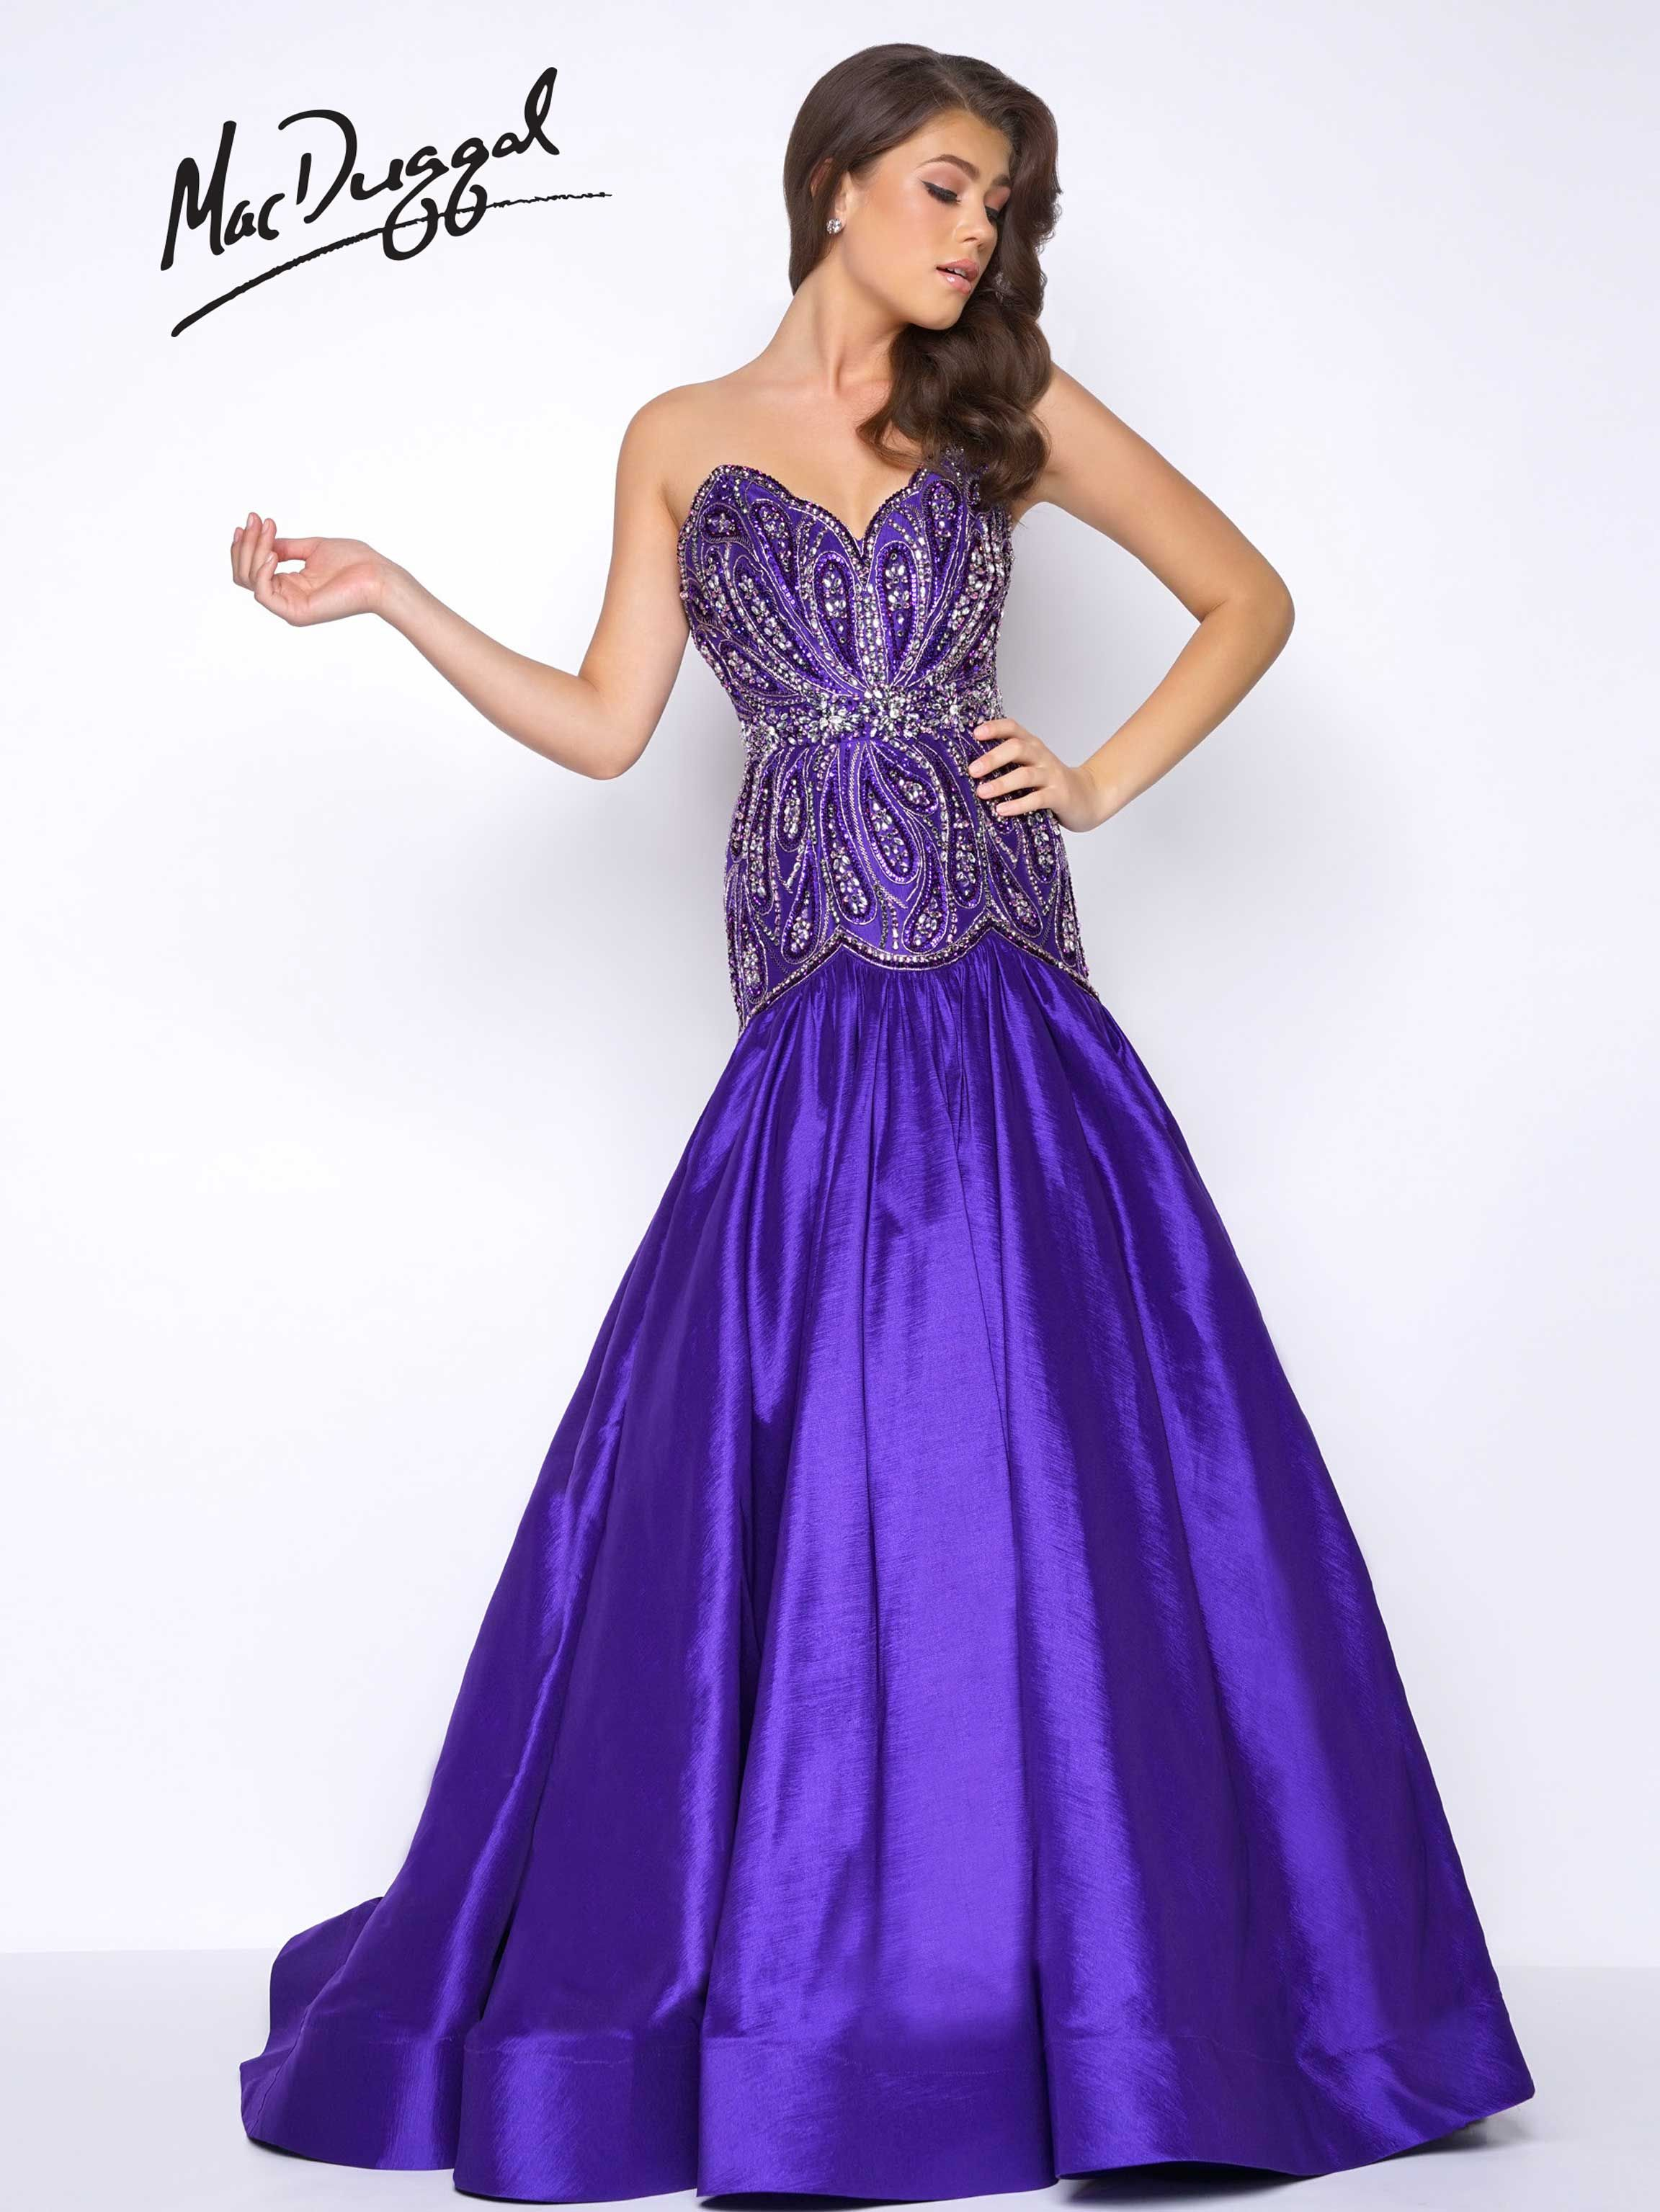 Sweetheart neckline, dropped waist, open back, satin prom dress with ...